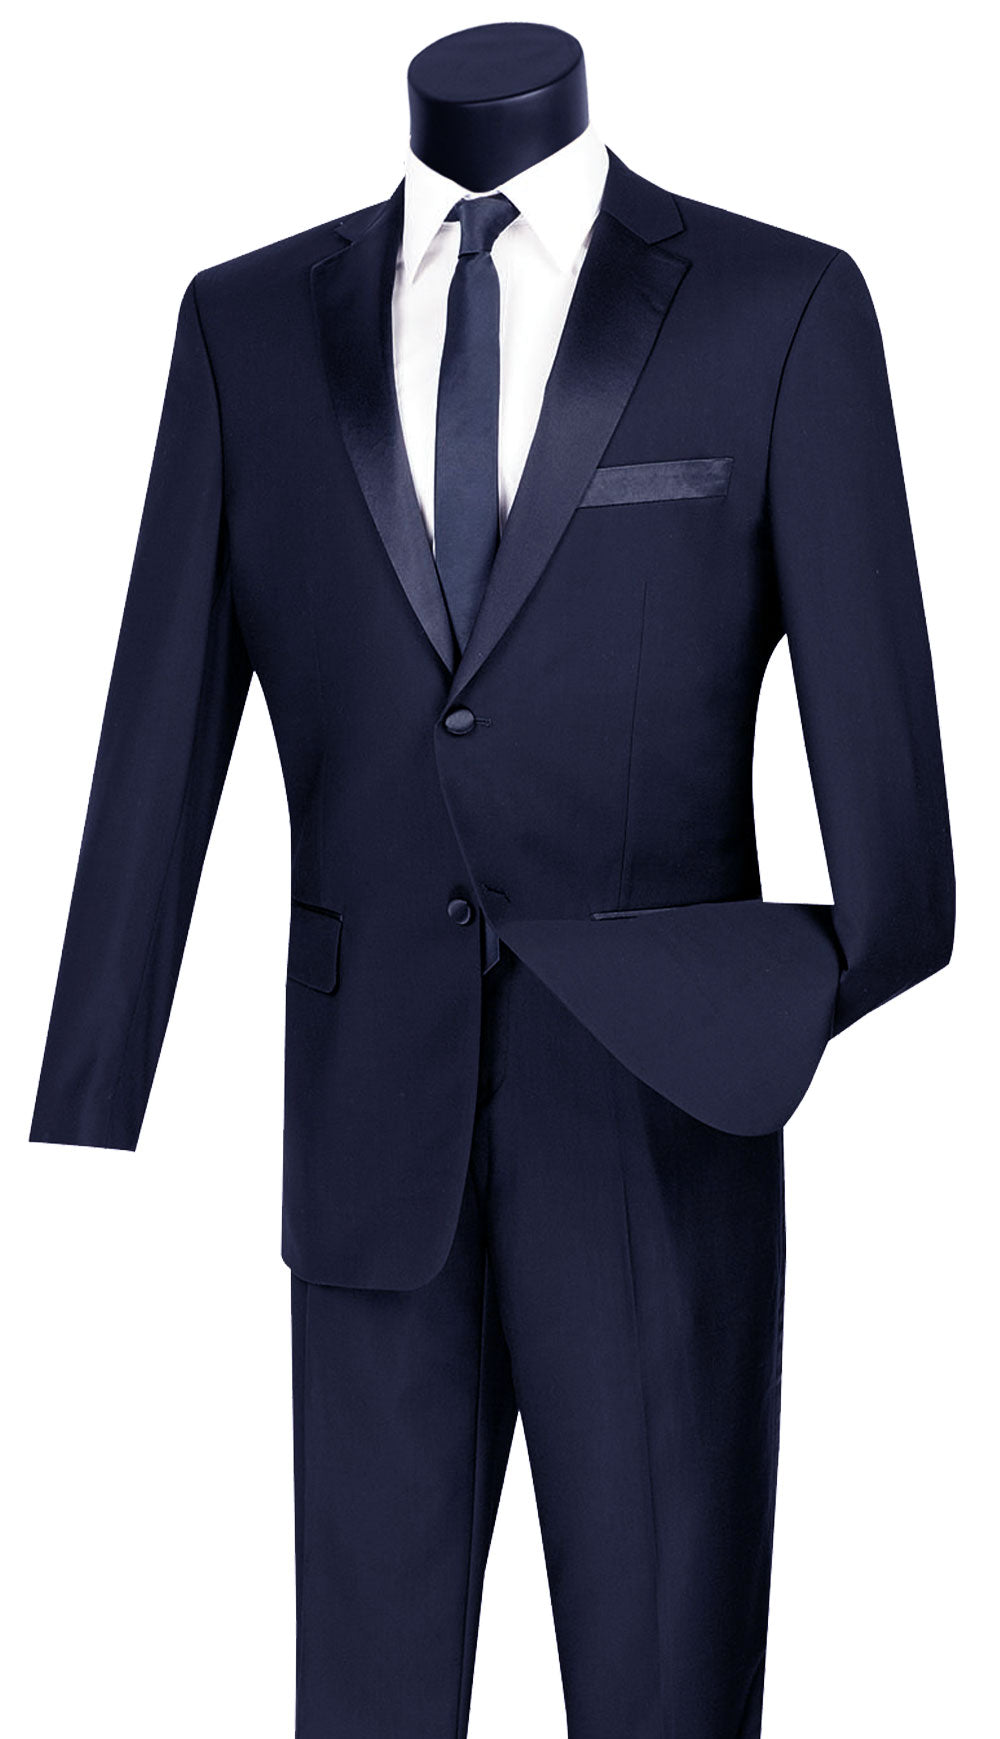 Vinci Tuxedo T-SC900-Navy - Church Suits For Less